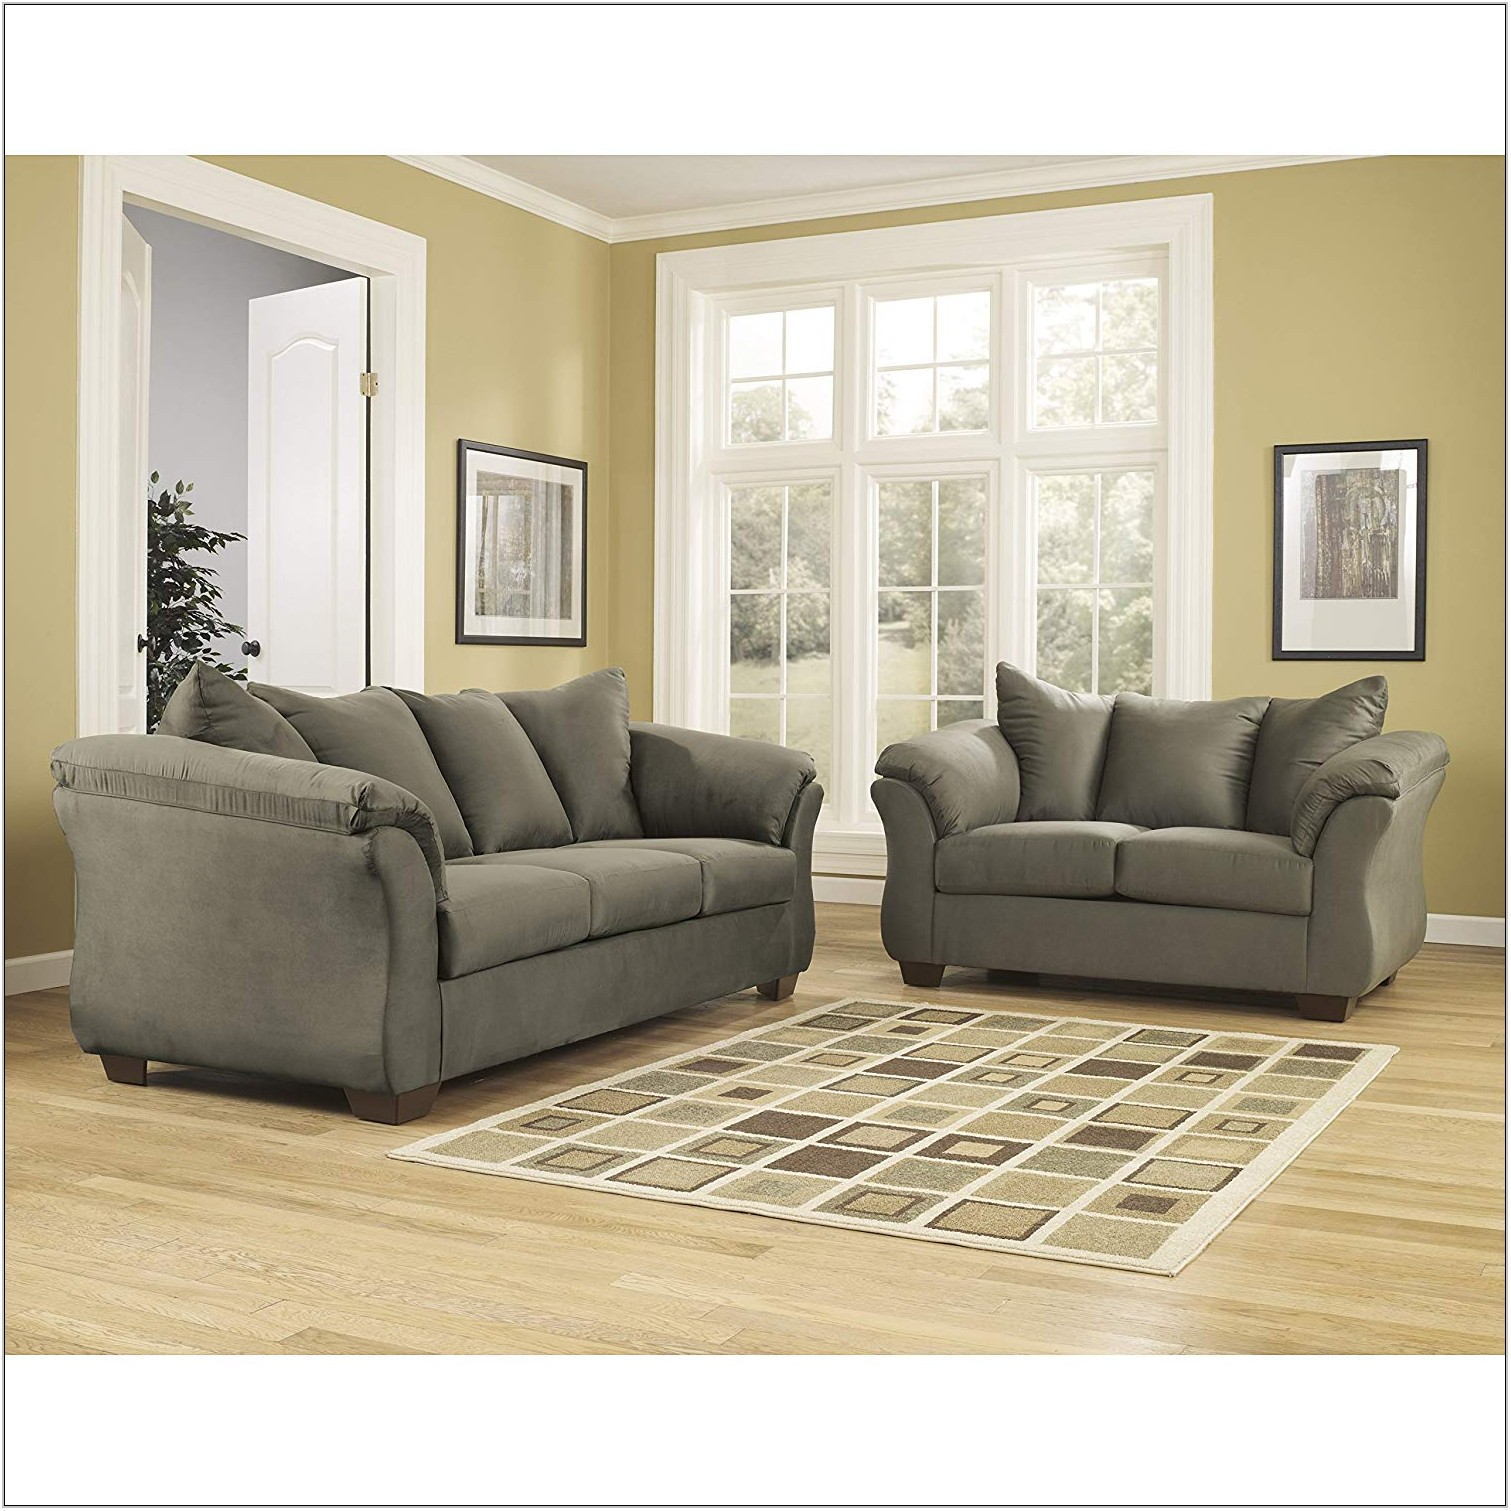 Ashley Signature Living Room Furniture